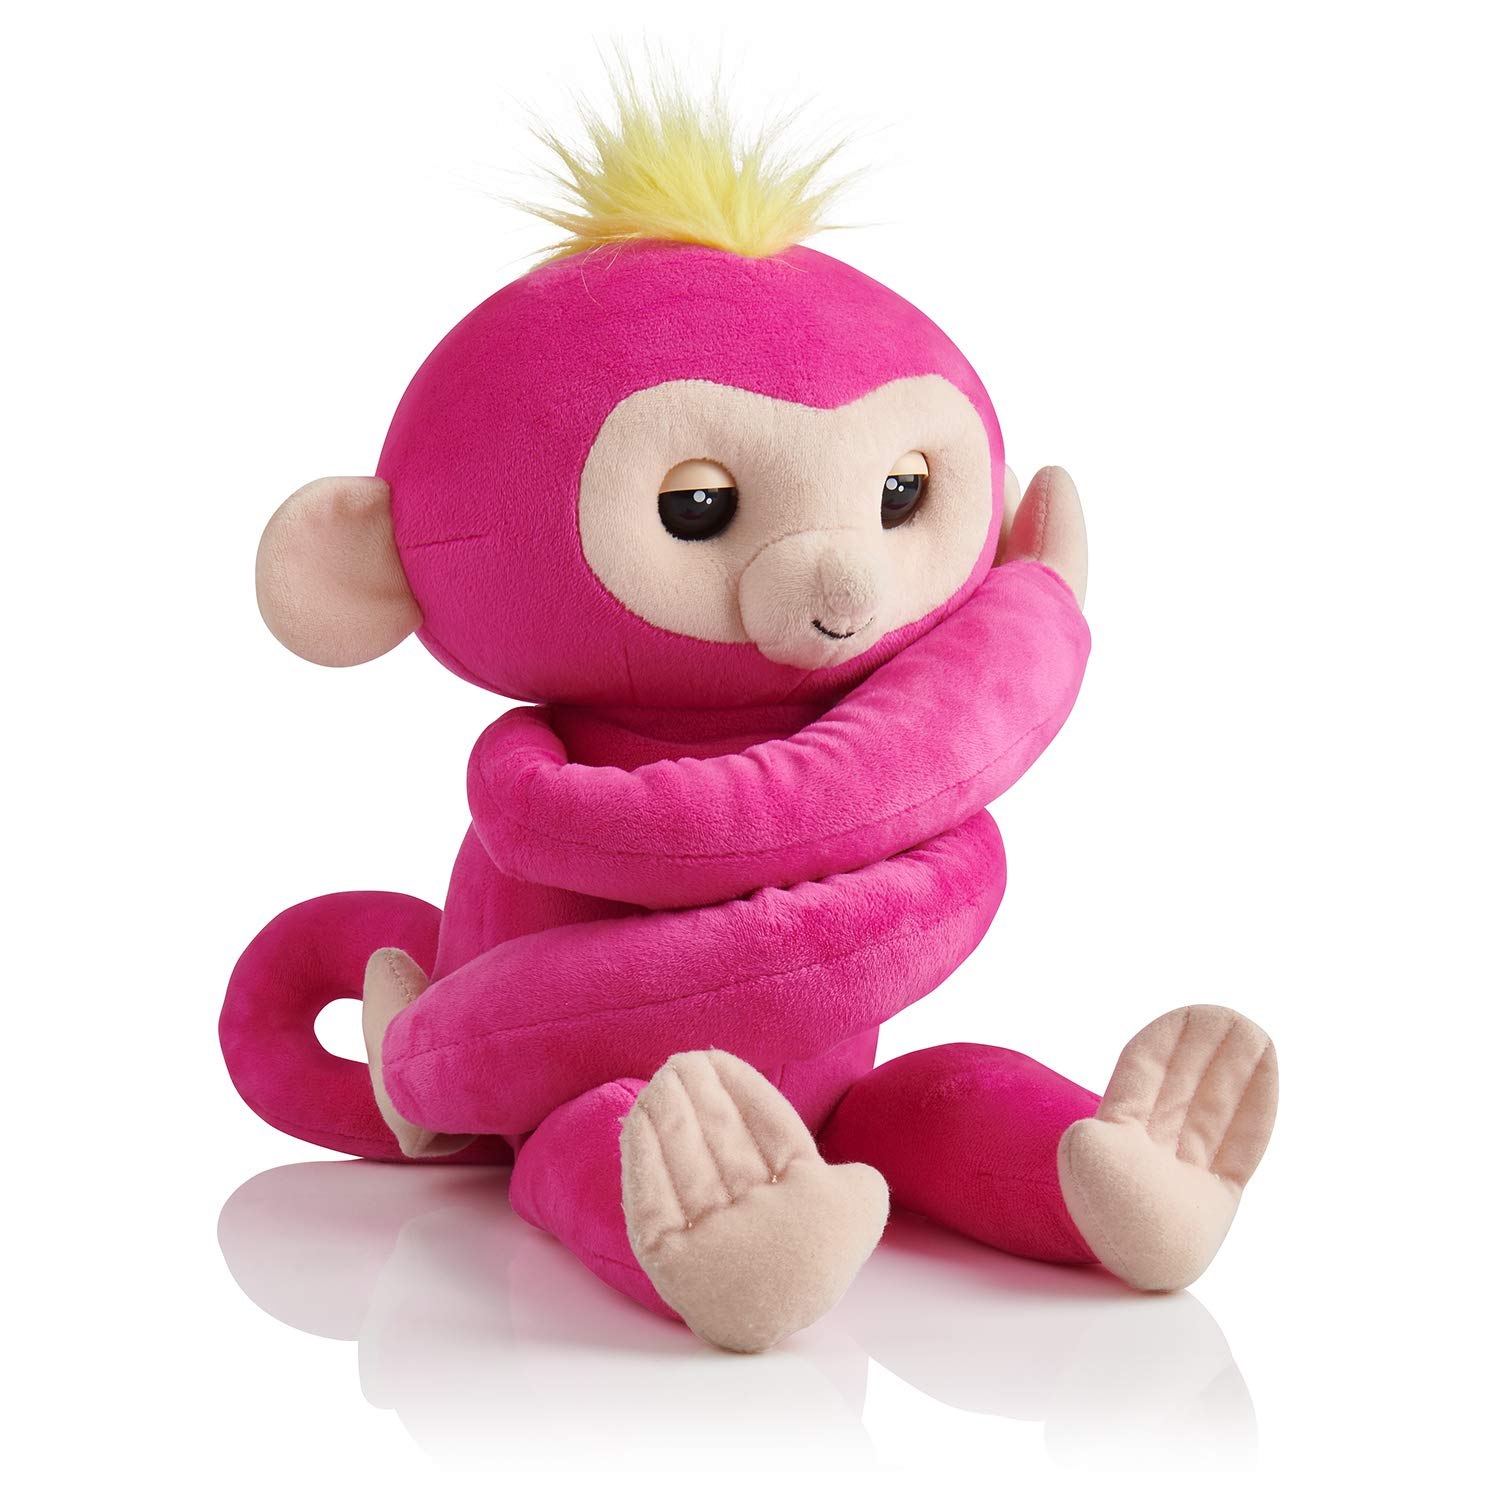 Fingerlings HUGS - BELLA - Friendly Interactive Plush Monkey Toy - by WowWee JAZWARES 3532